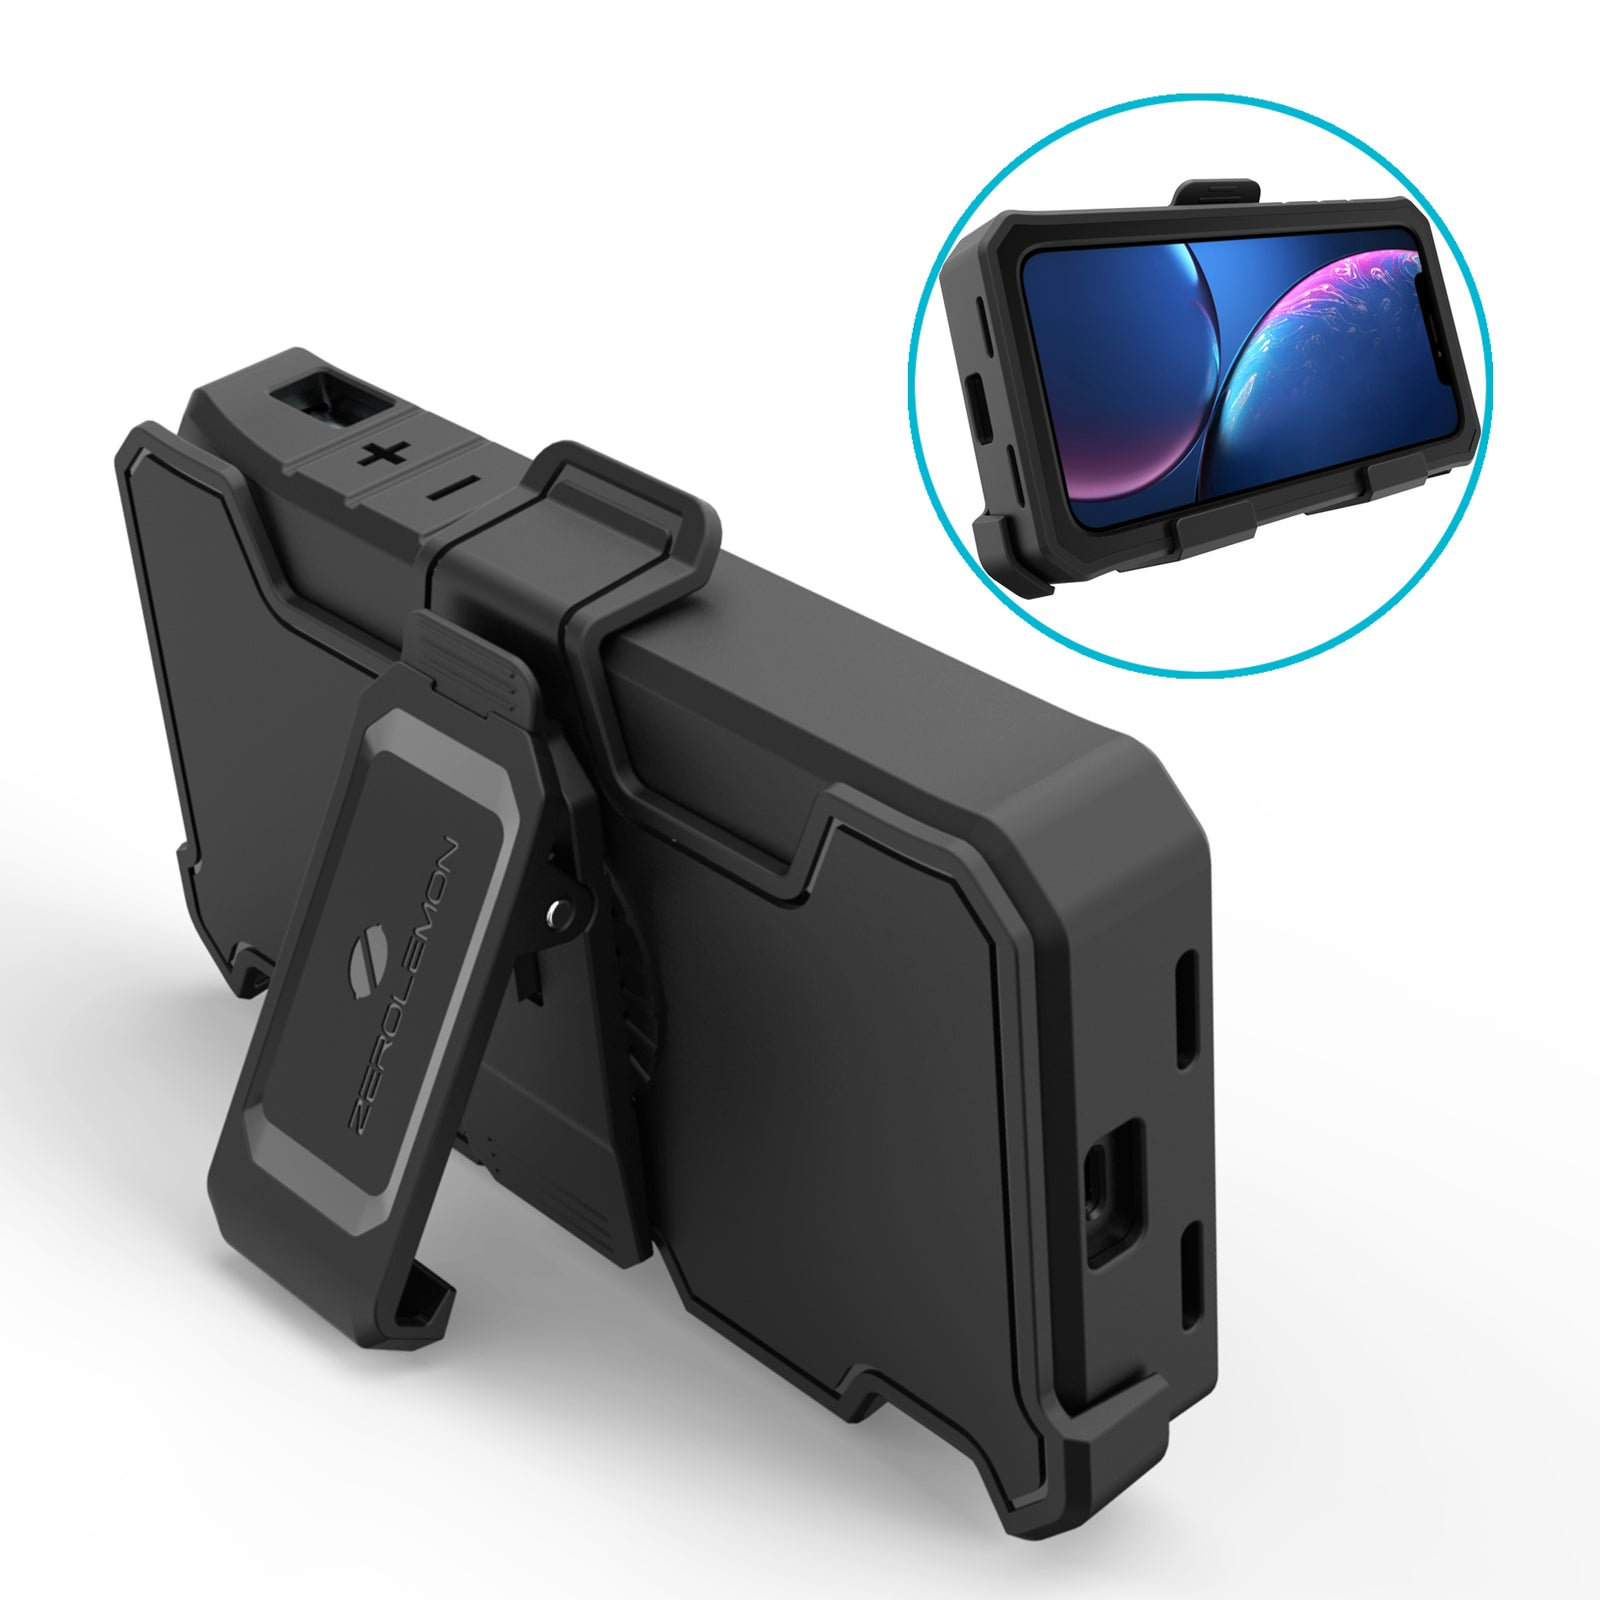 Belt Clip Holster for ZeroLemon iPhone XR 8000mAh Battery Case